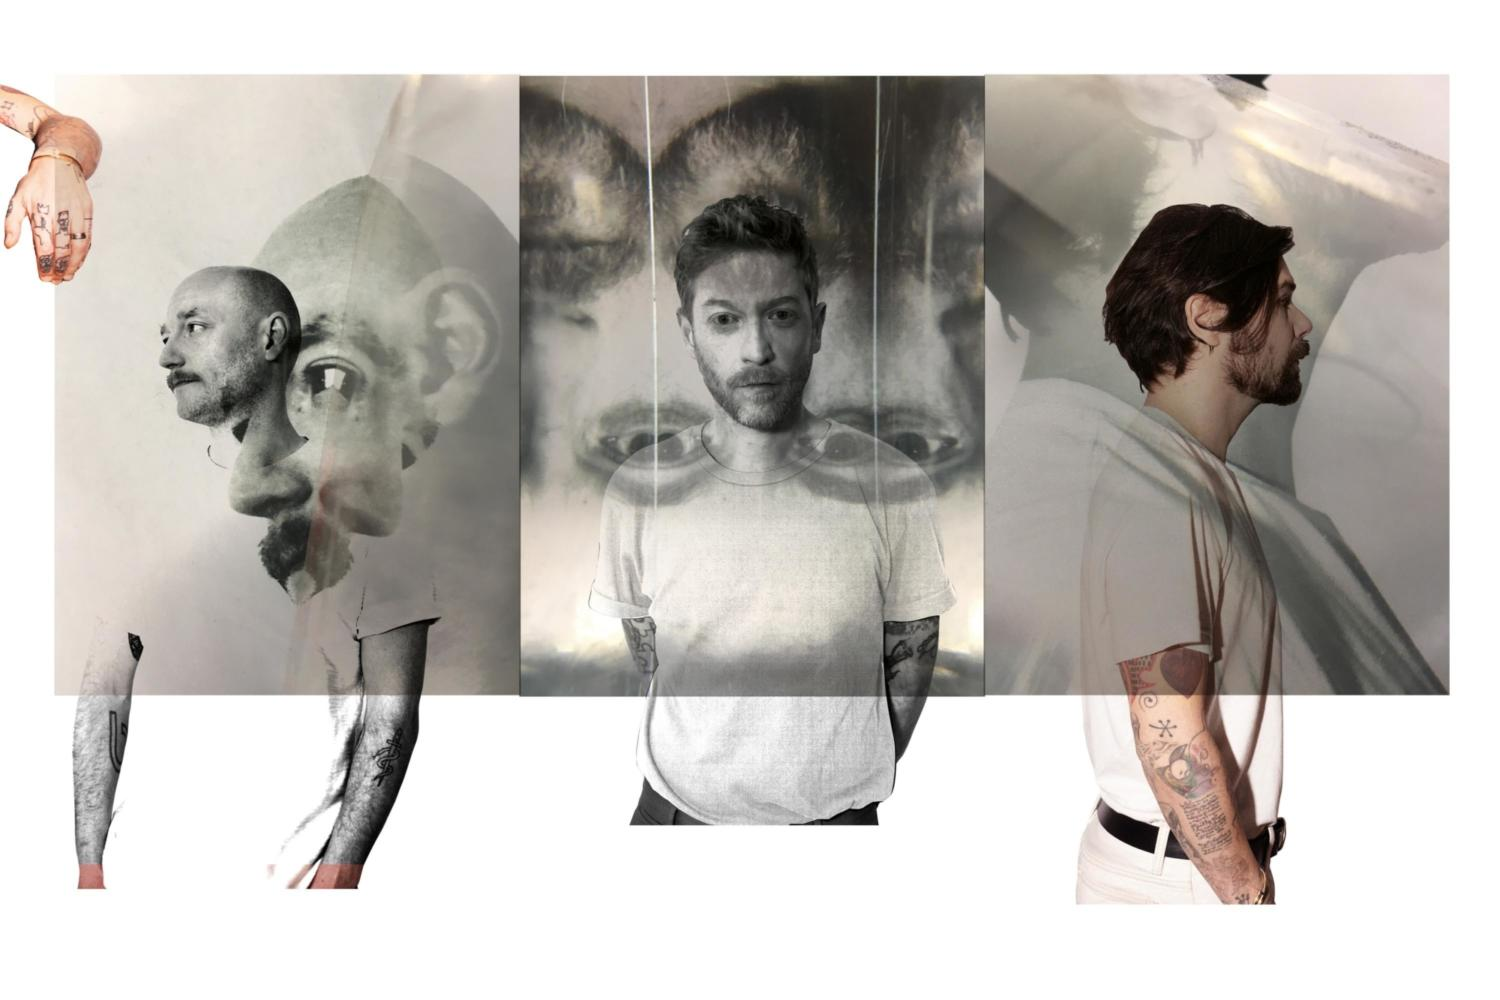 Biffy Clyro offer up new song 'Tiny Indoor Fireworks'